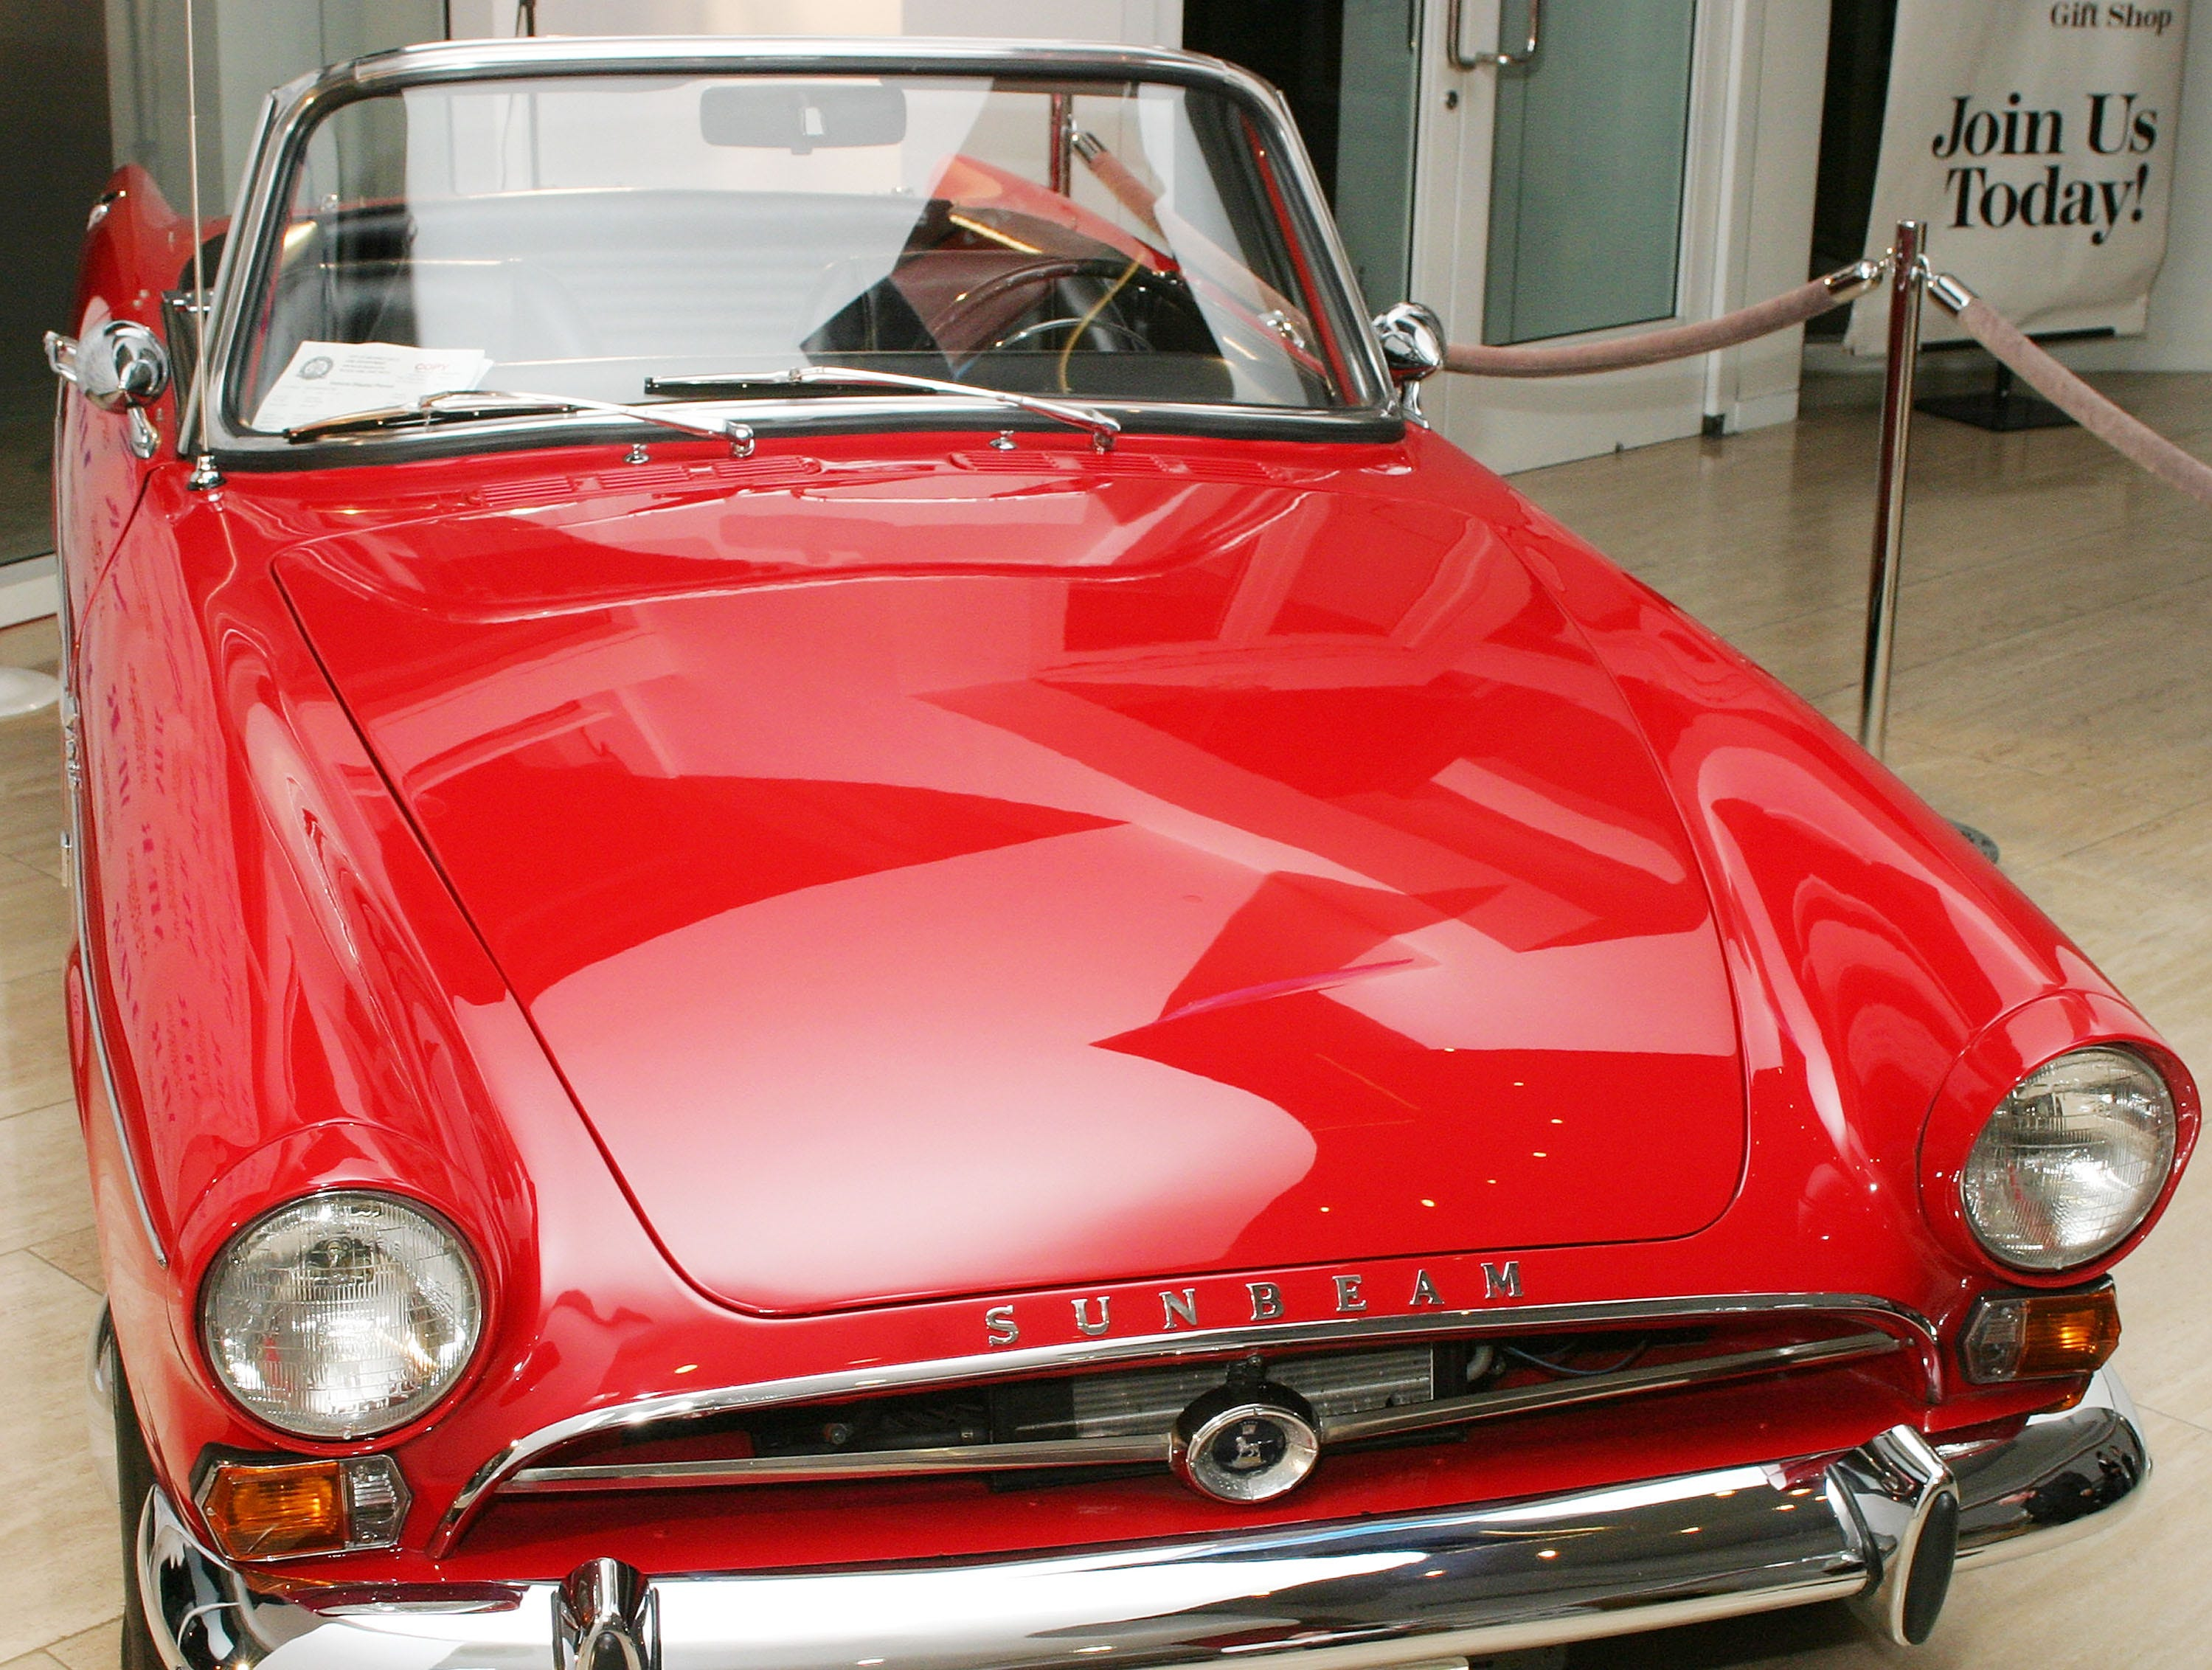 BEVERLY HILLS, CA - NOVEMBER 5:  A 1965 Sunbeam Tiger Car is shown on display during A Get Smart Reunion at The Museum of Television & Radio November 5, 2003 in Beverly Hills, California.  (Photo by Giulio Marcocchi/Getty Images)